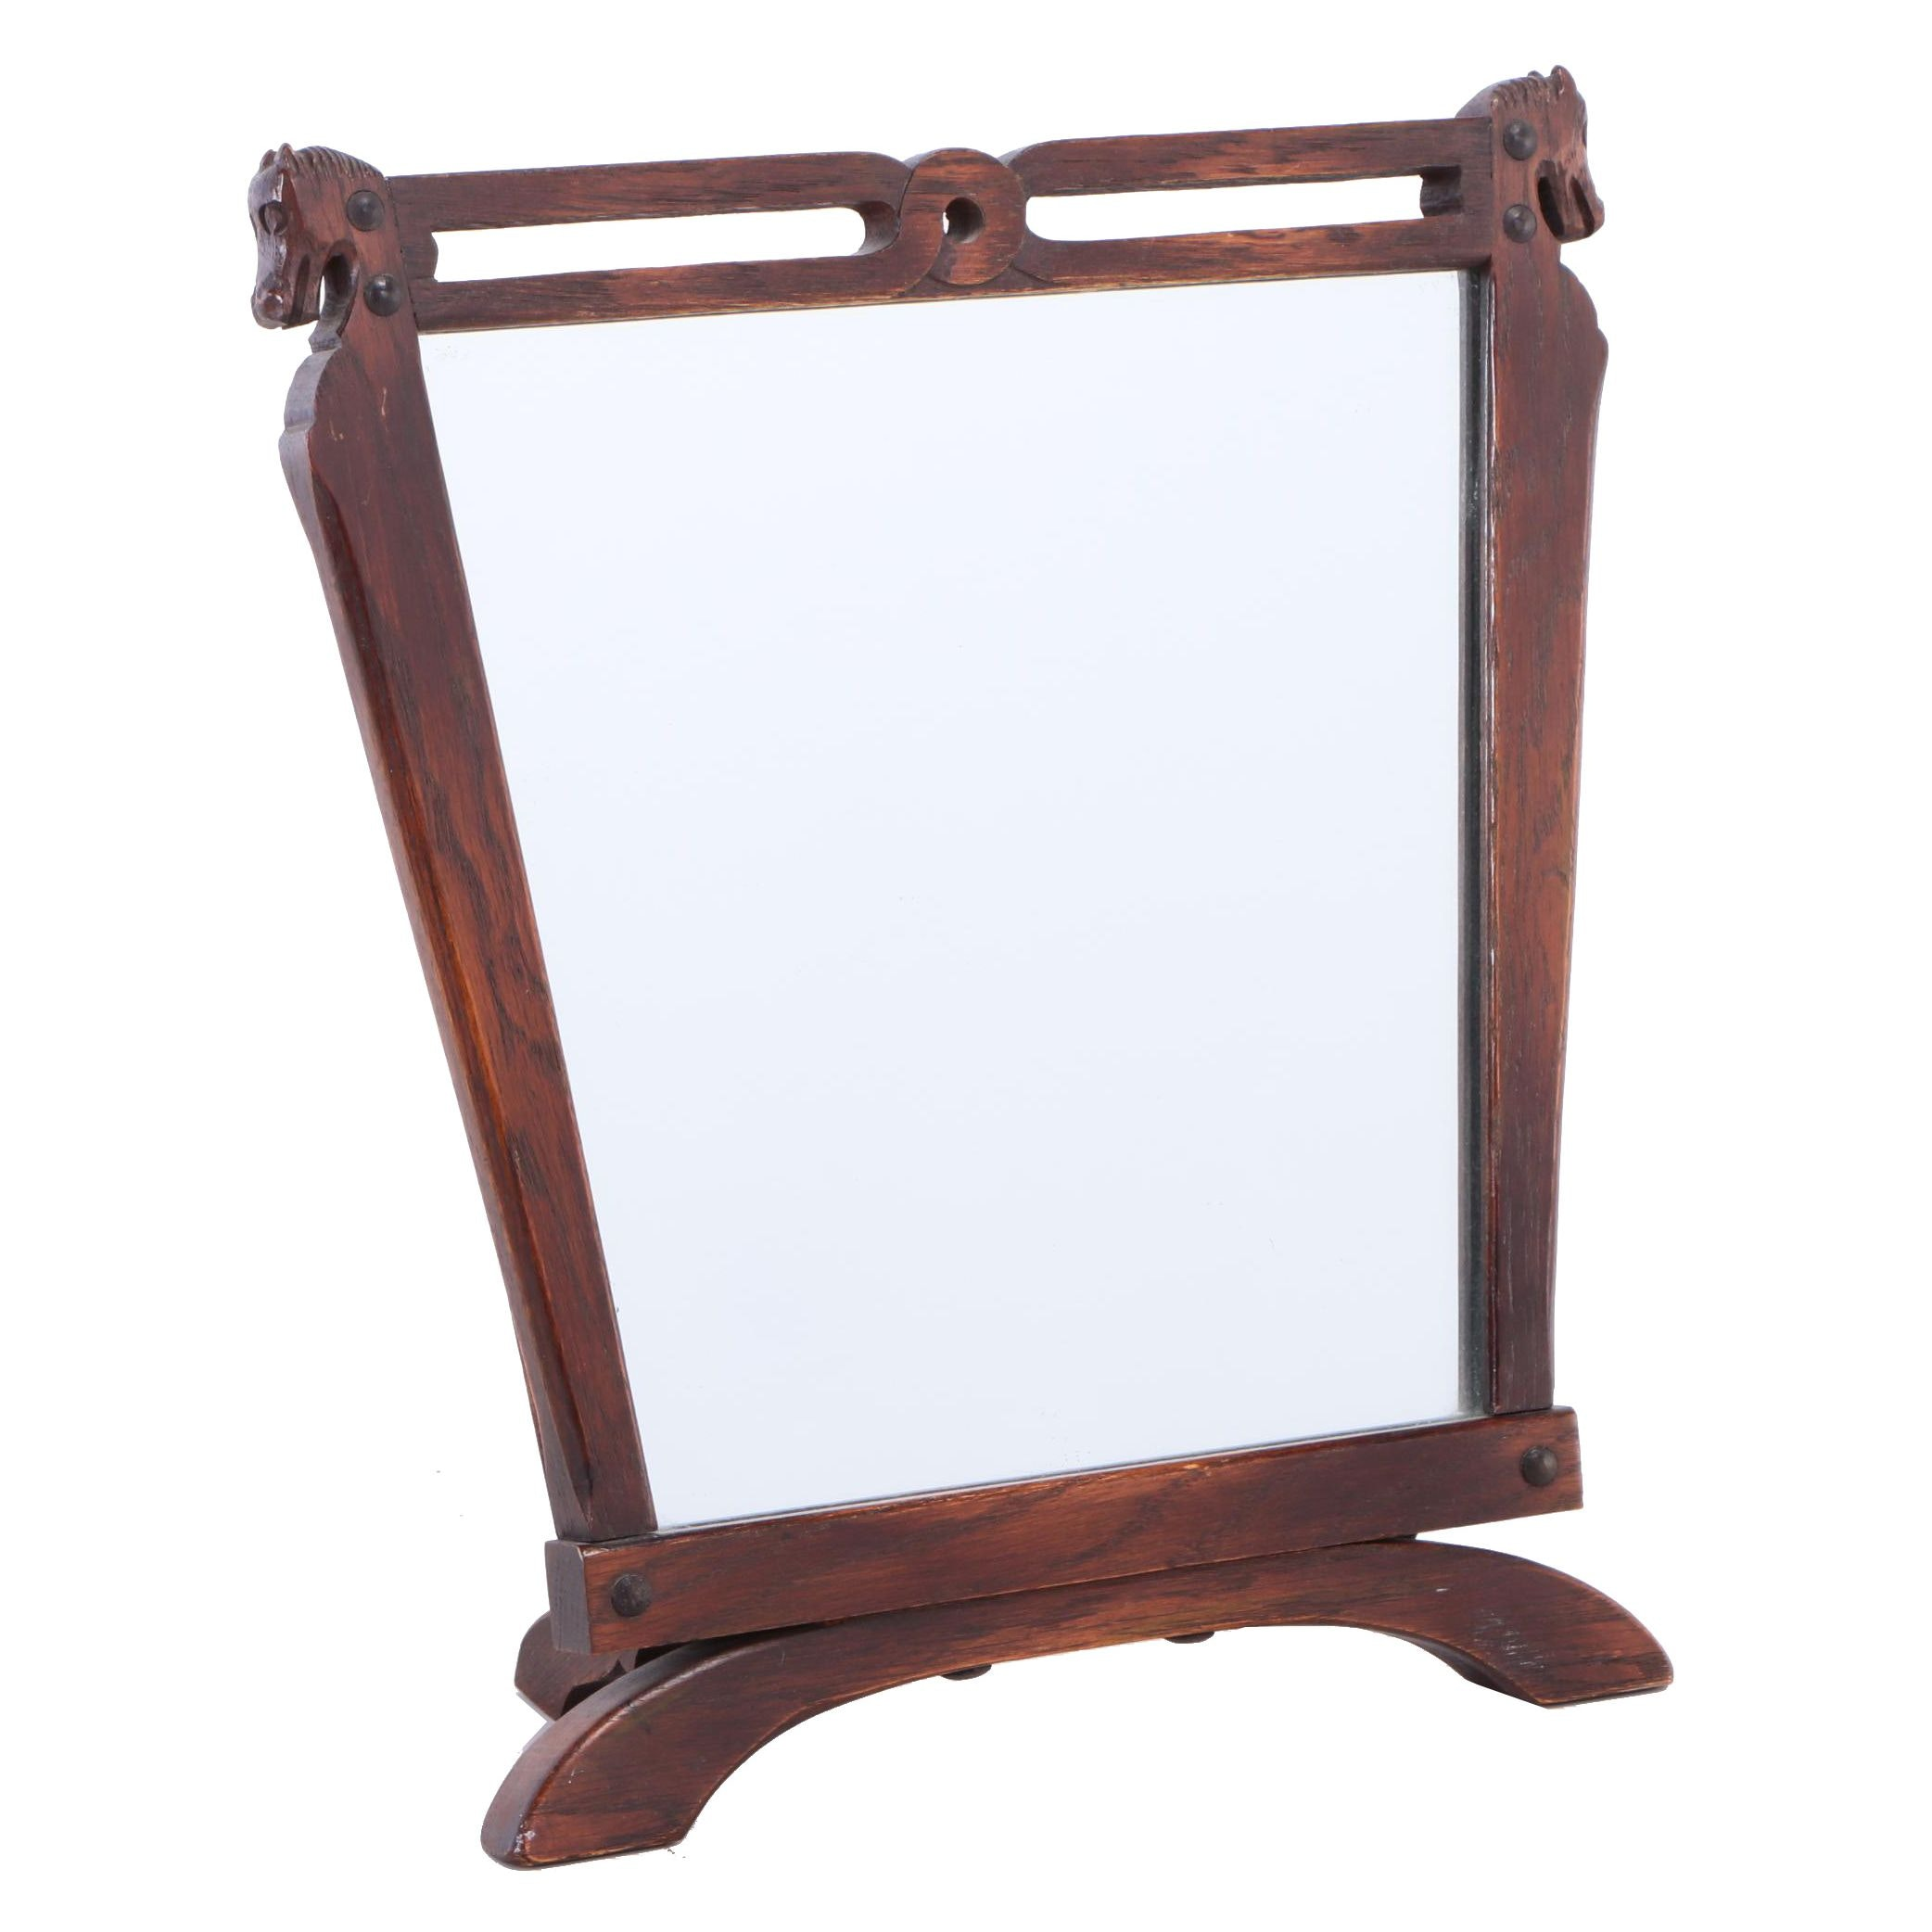 Carved Oak Tabletop Mirror with Horsehead Finials, 20th Century